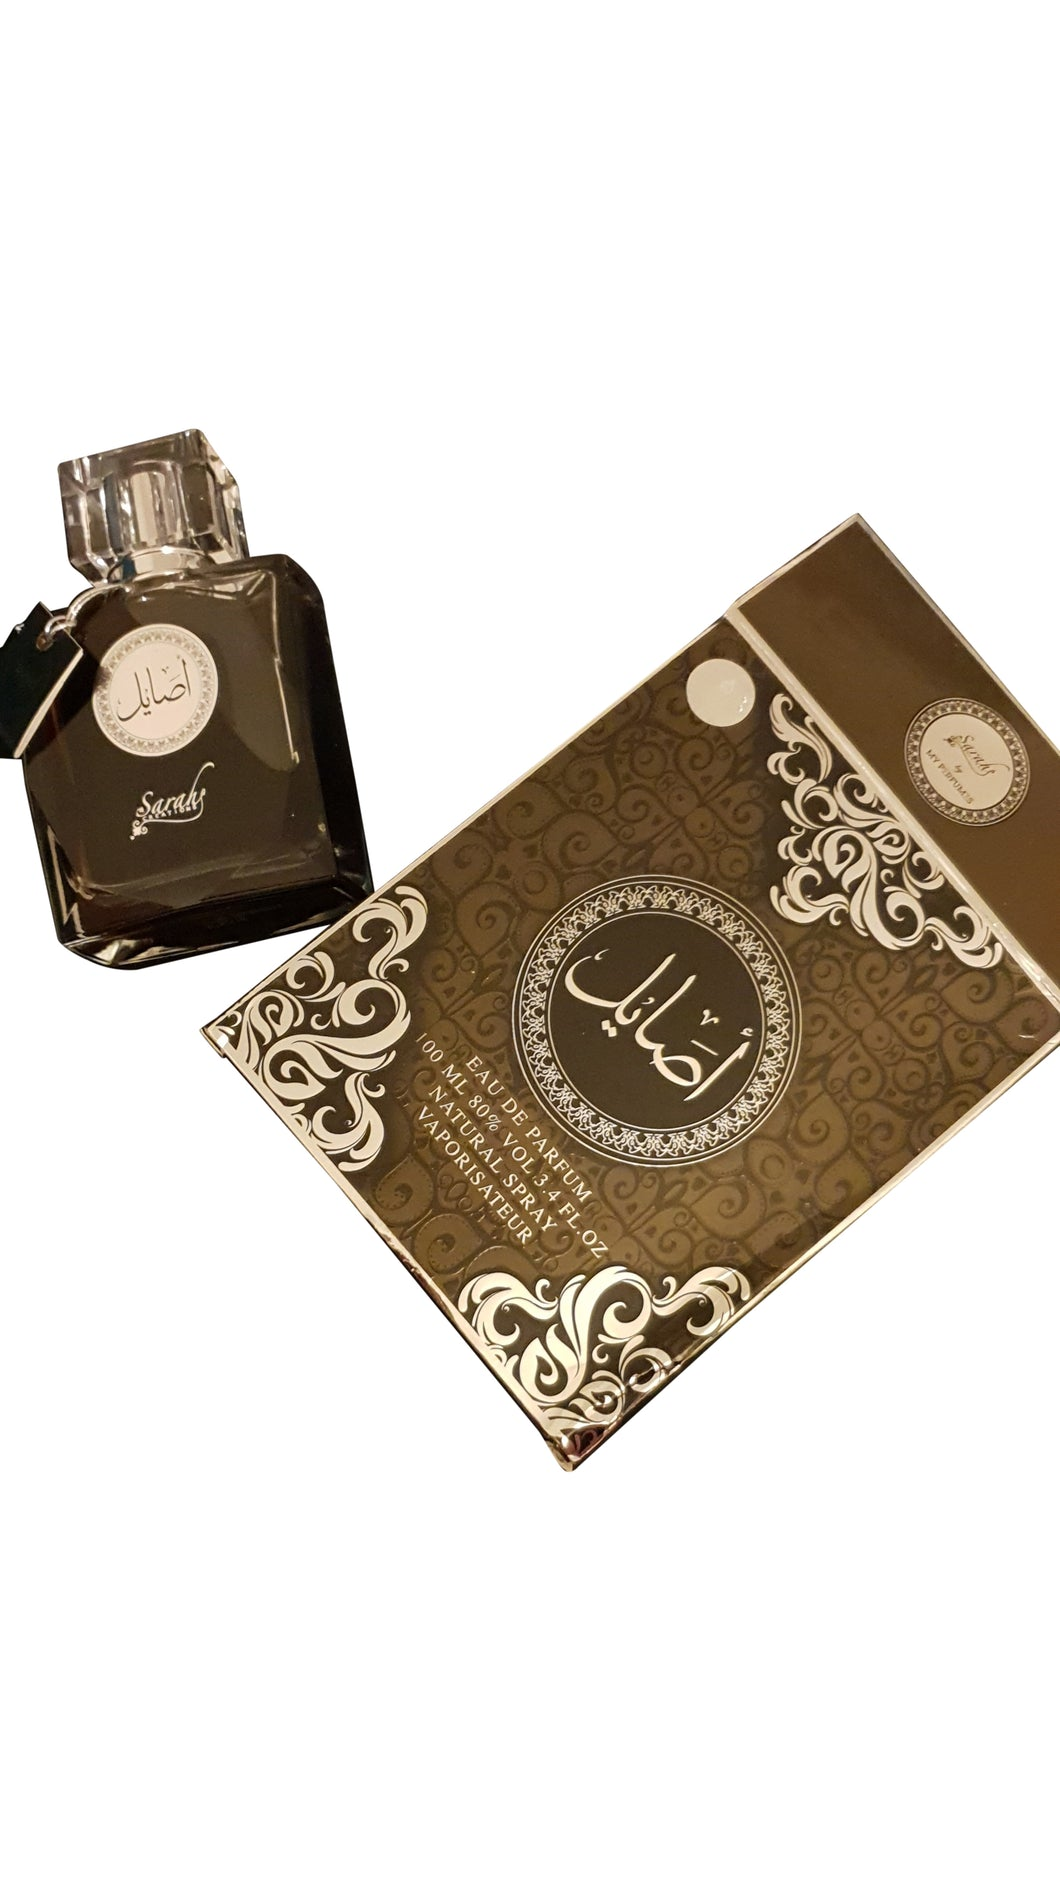 ASAYEL EDP PERFUME BY SARAH'S CREATIONS